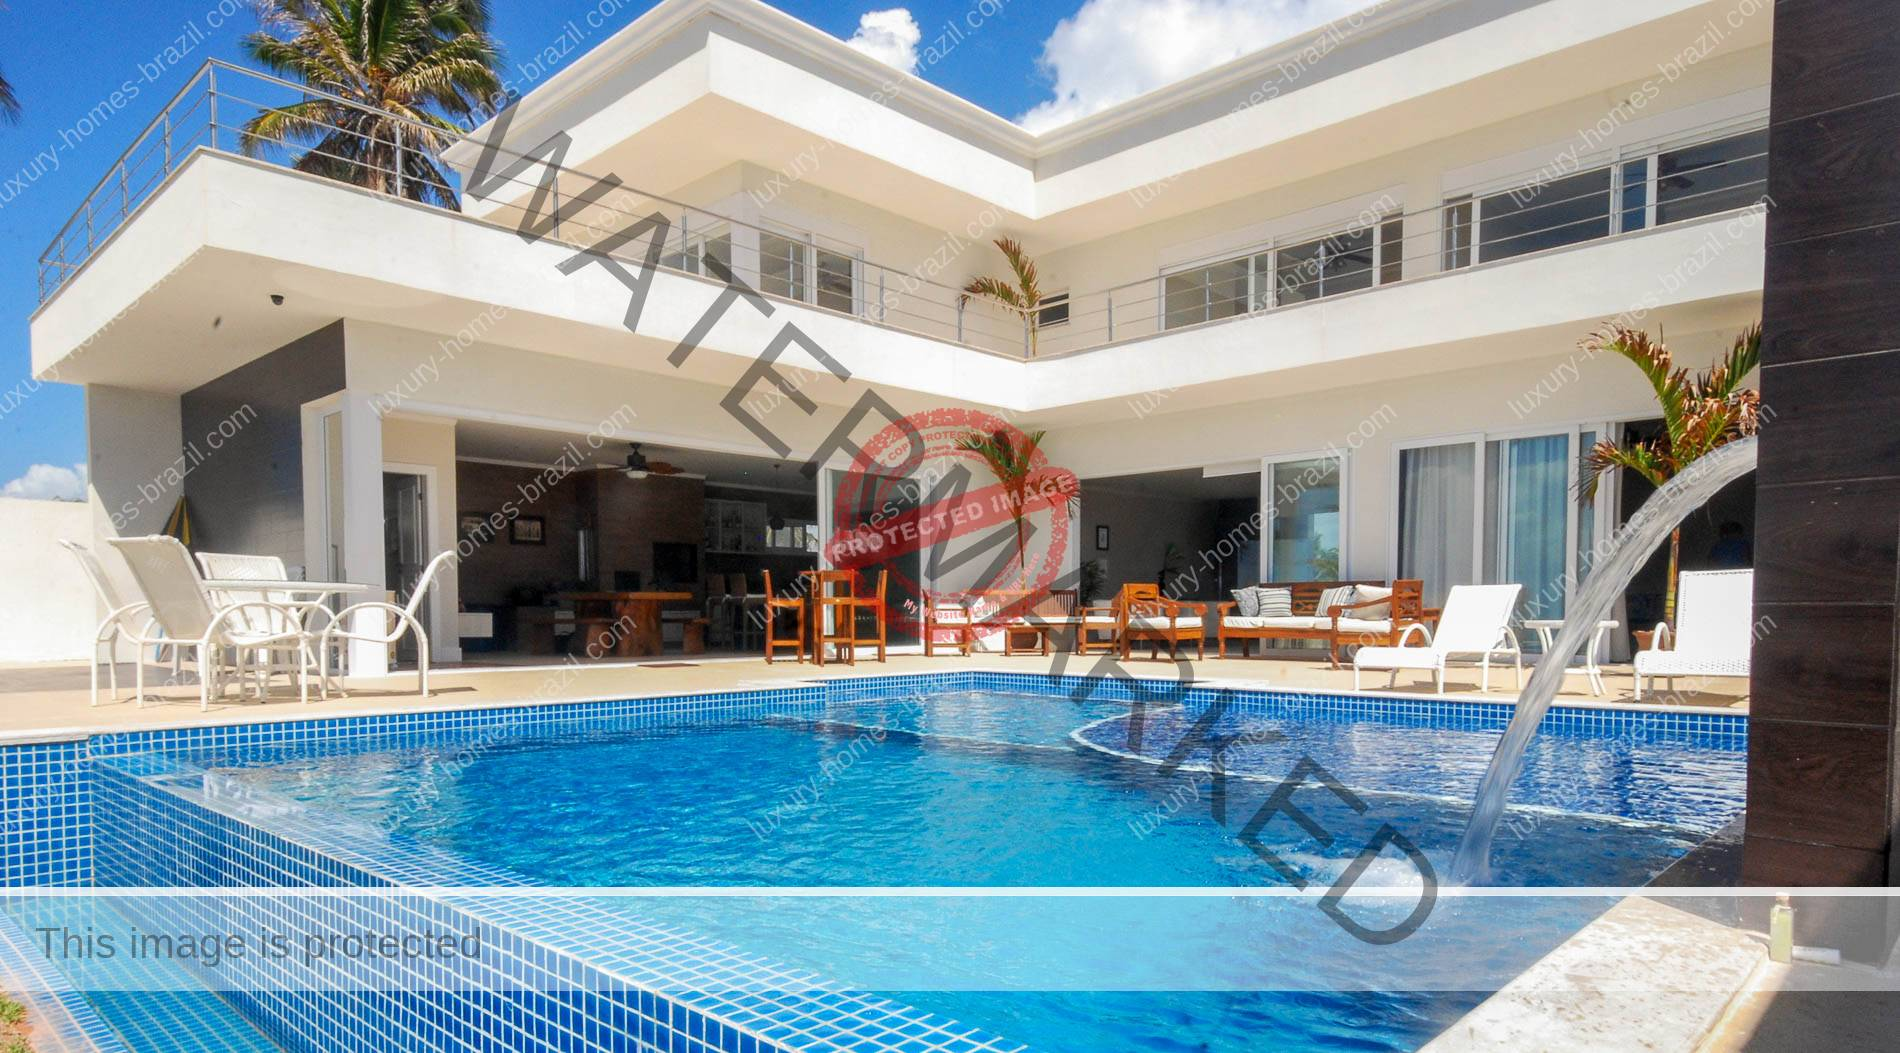 Delightful Home · Condos; Luxury Beachfront Home For Sale Barra De Jacuípe